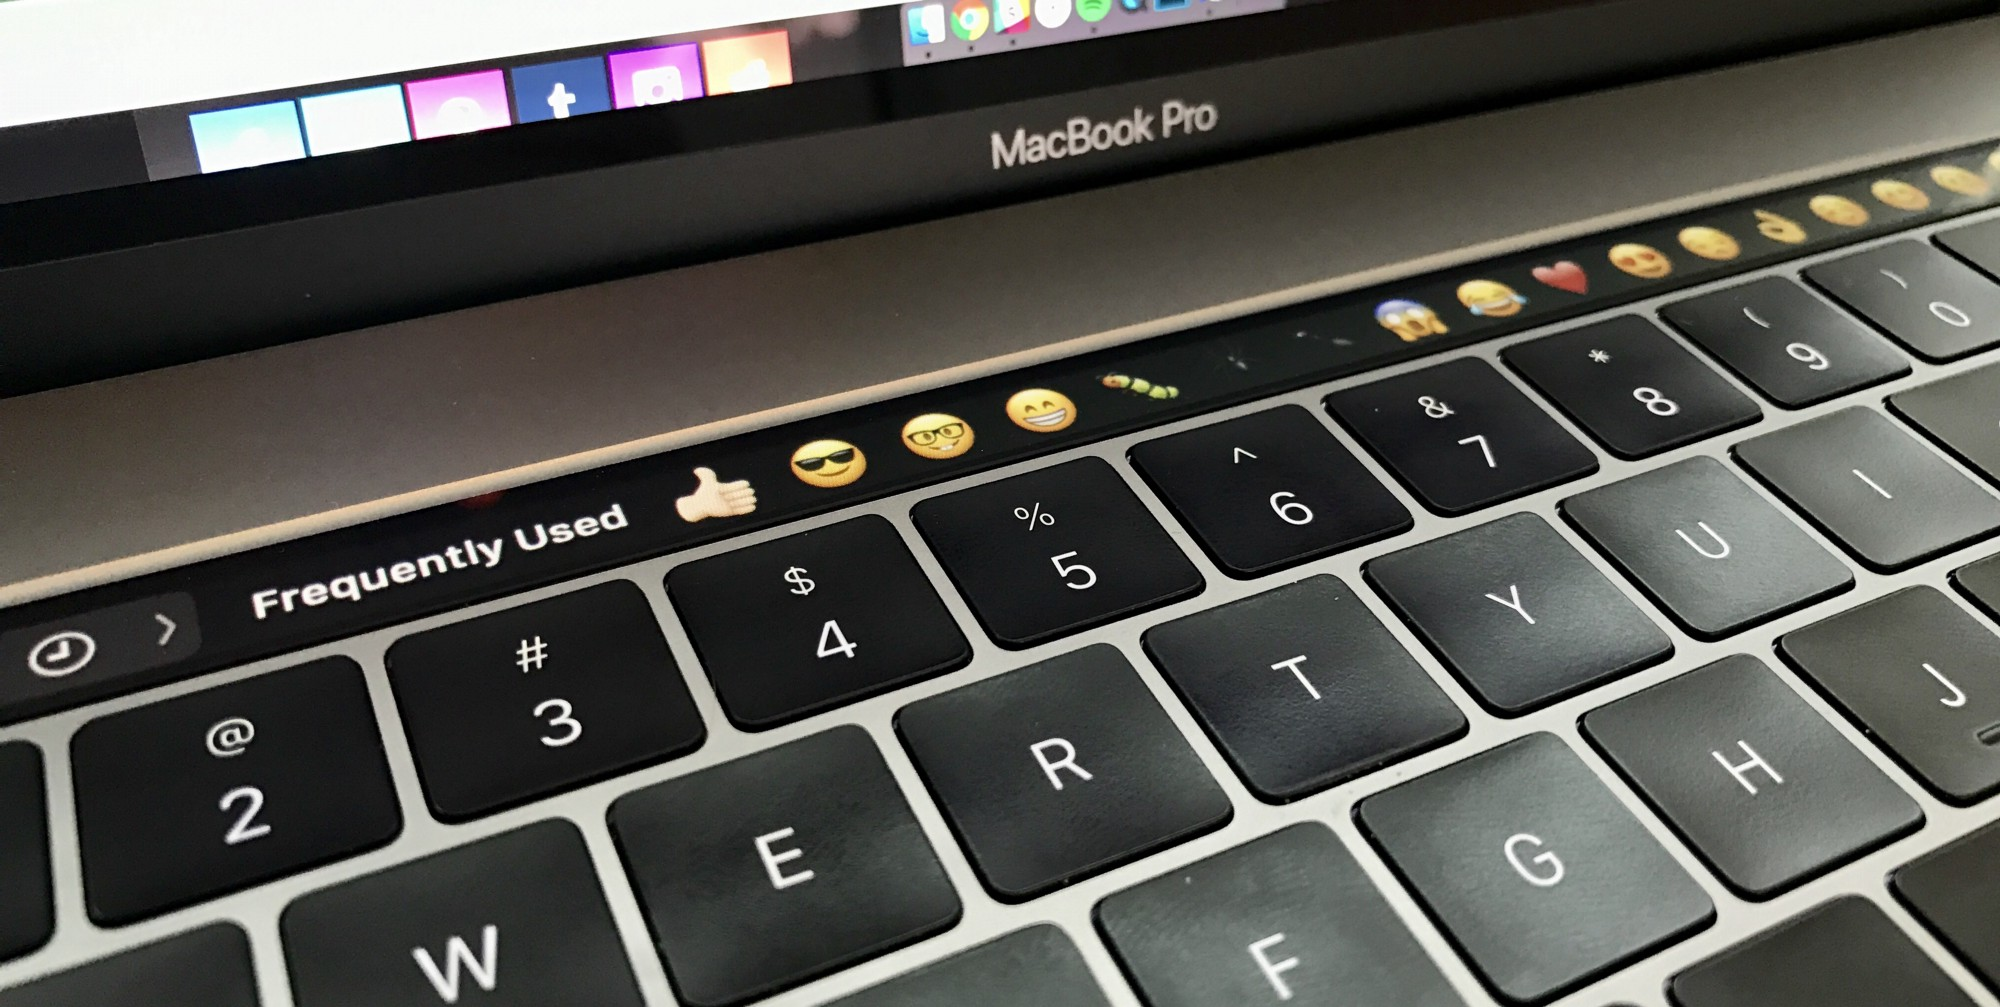 Touch Bar emojis on the MacBook Pro